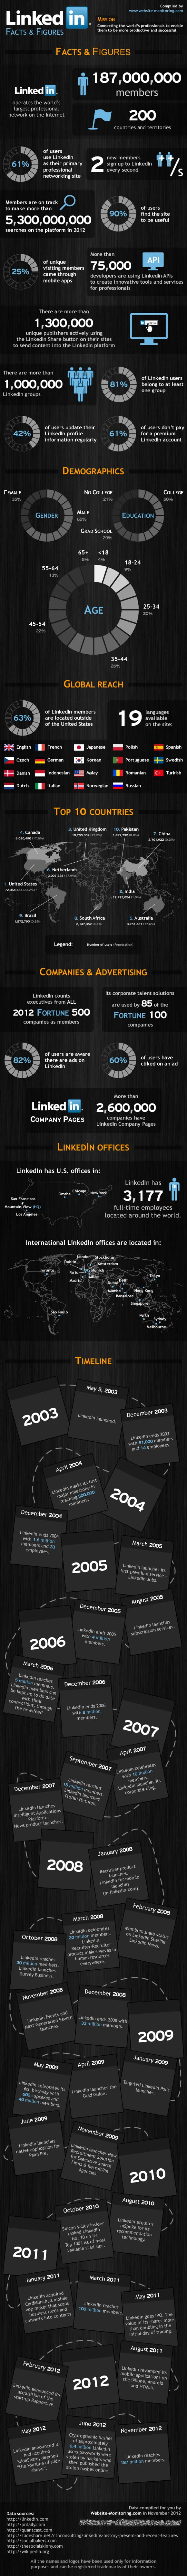 8226762514 f688e7bfcb o3  LinkedIn – Facts and Figures [INFOGRAPHIC]